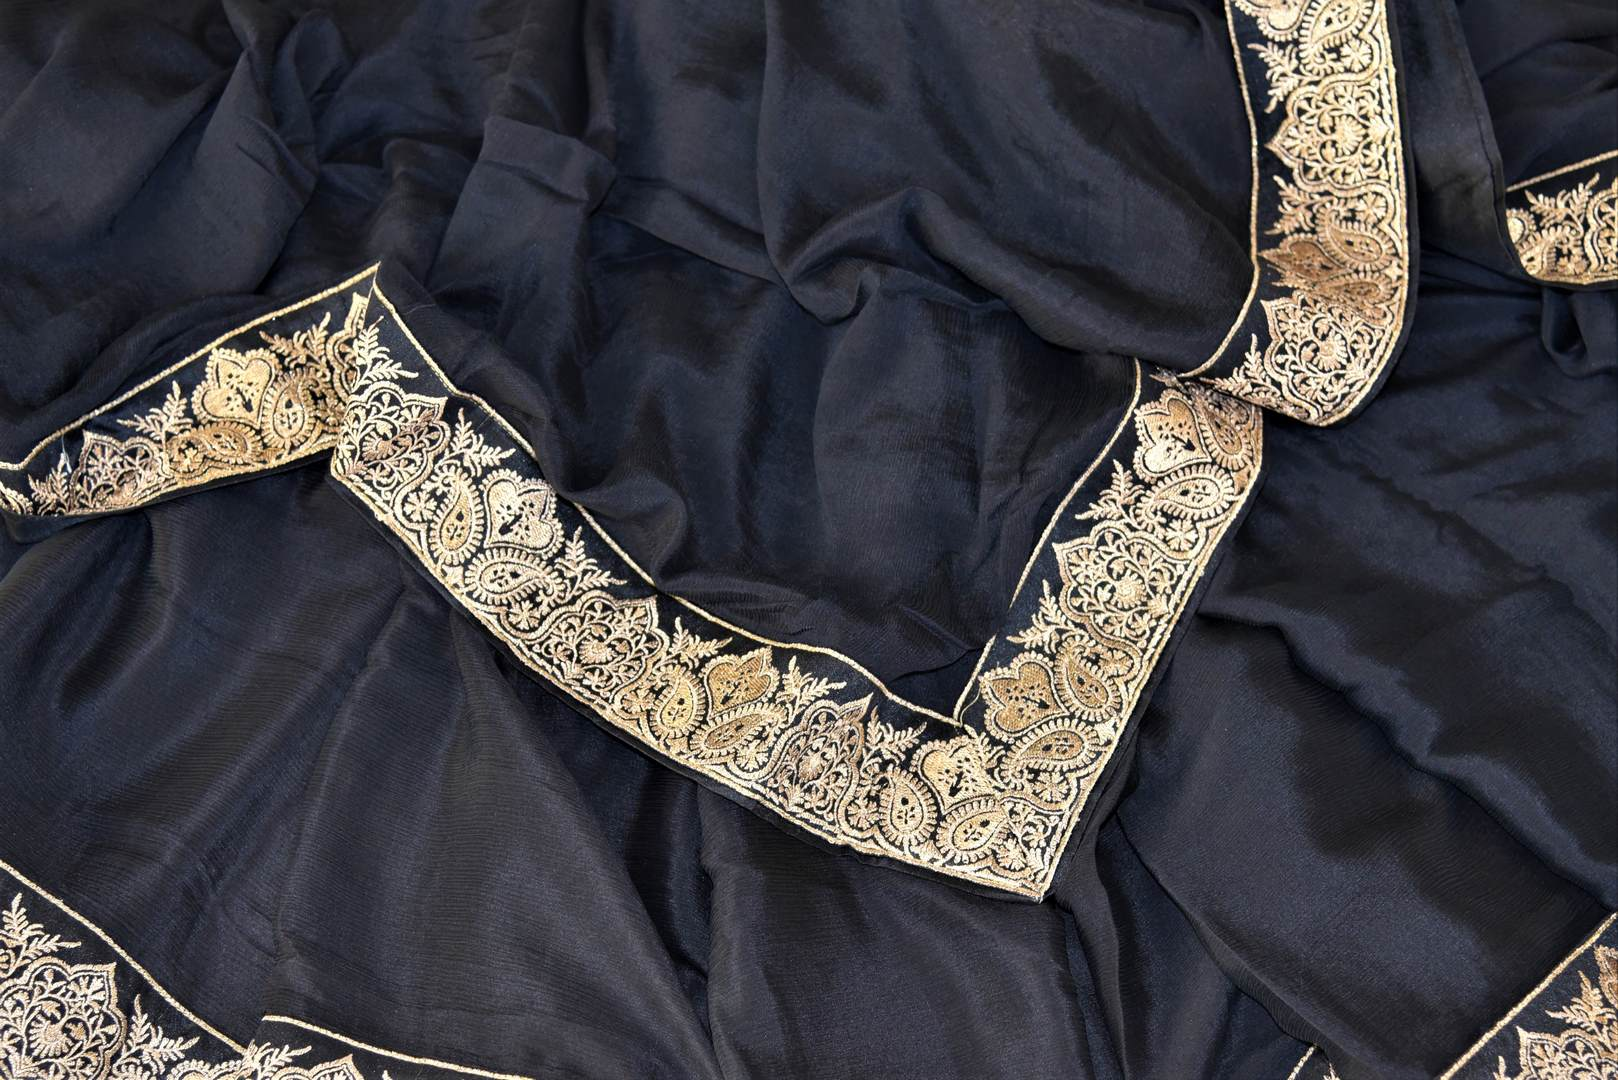 Shop ravishing black chiffon saree online in USA with embroidered border. Shop such gorgeous embroidered sarees, designer sarees in USA from Pure Elegance Indian clothes store in USA for special occasions.-details